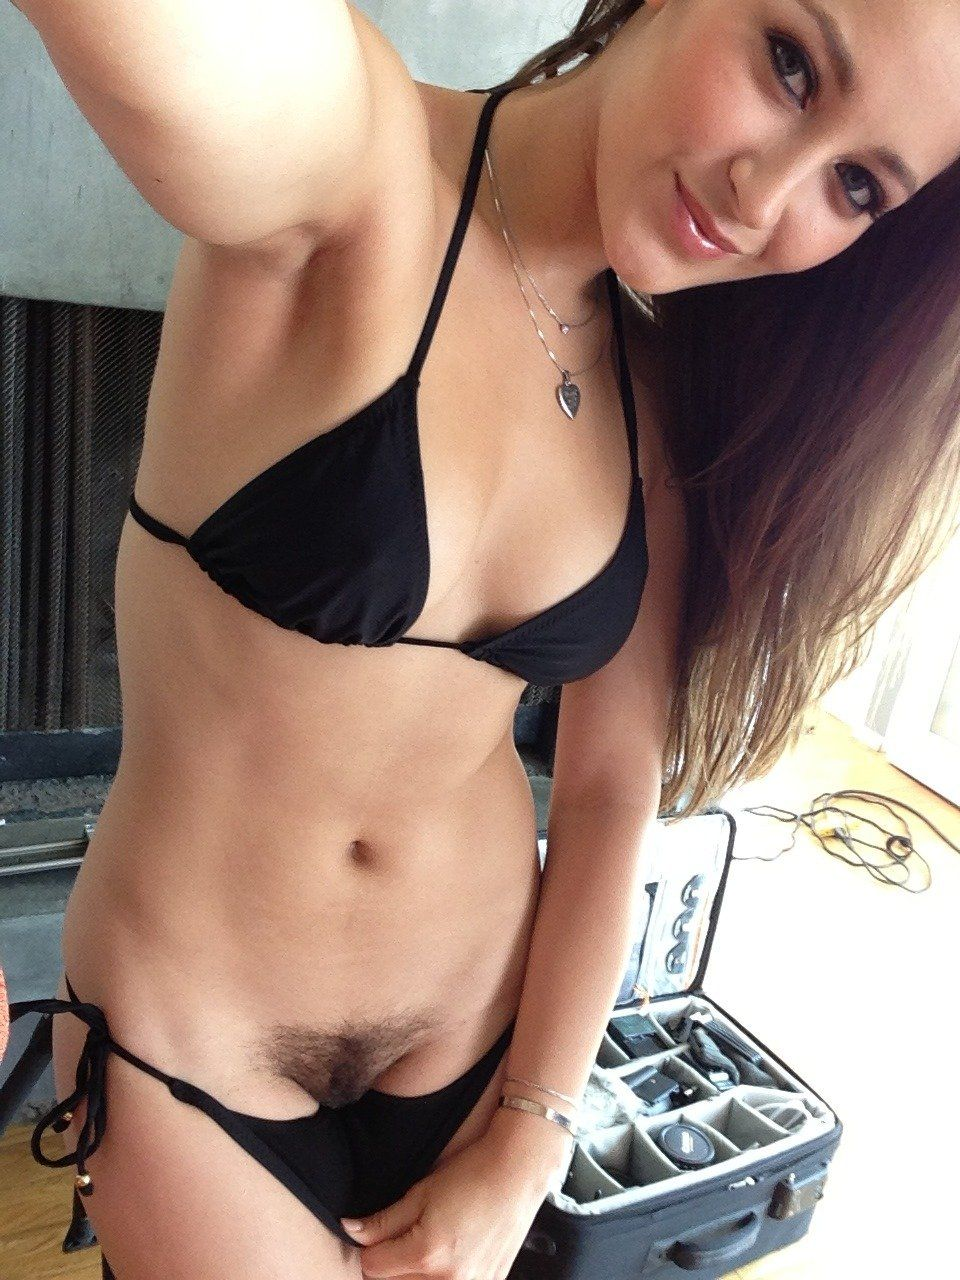 finland sex women pictures